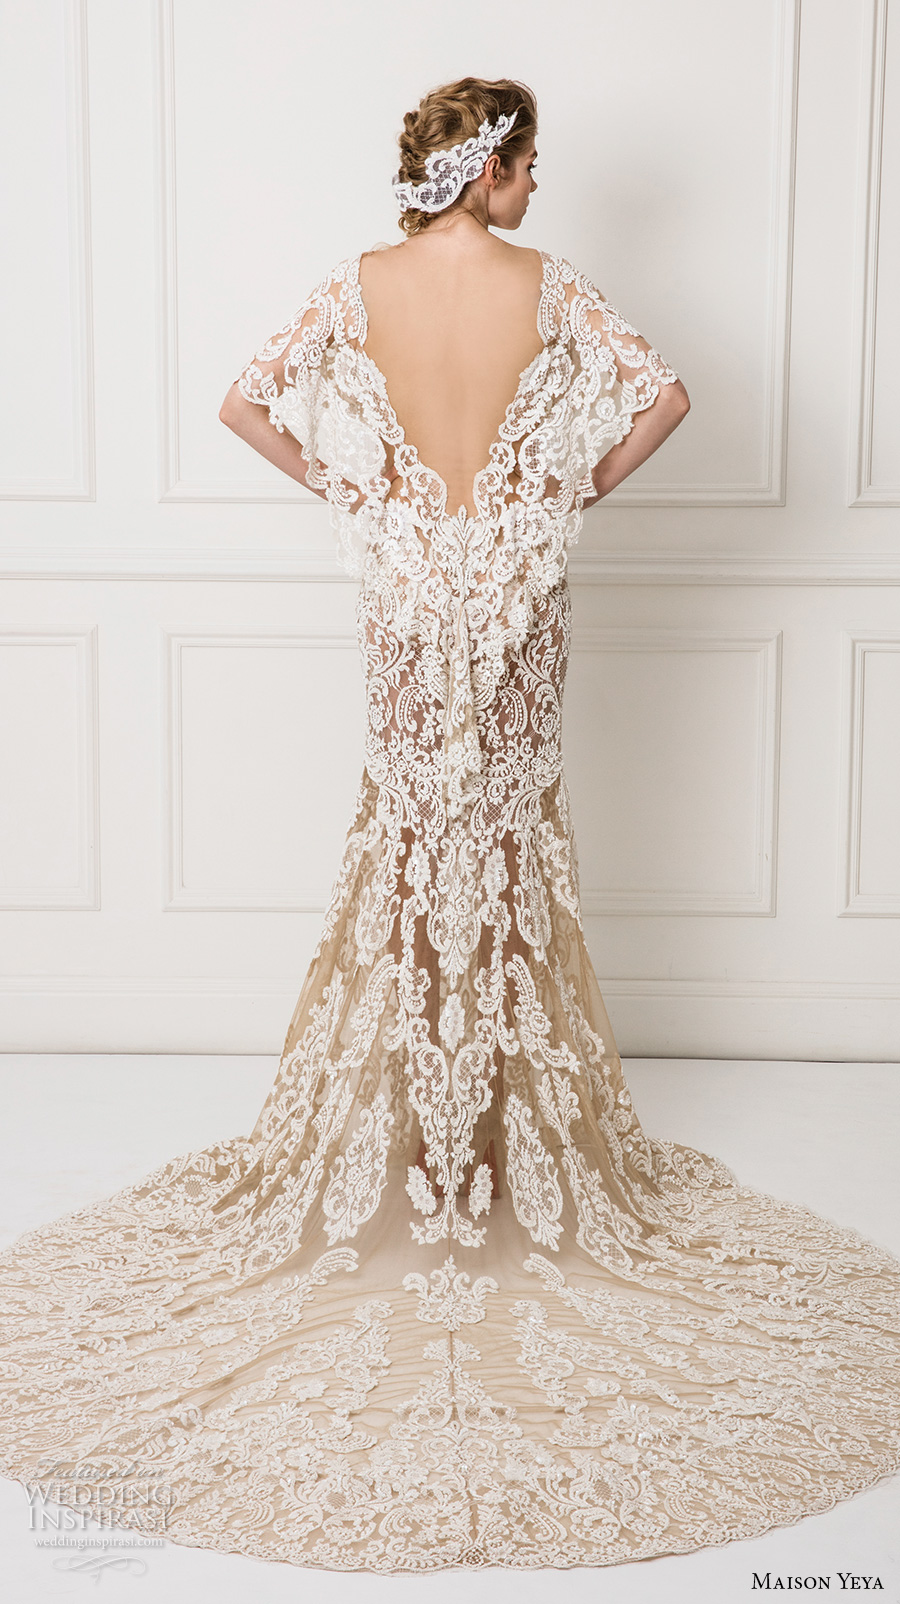 maison yeya 2017 bridal flutter sleeves v neck full embellishment elegant lace sheath wedding dress open v back chapel train (8) bv